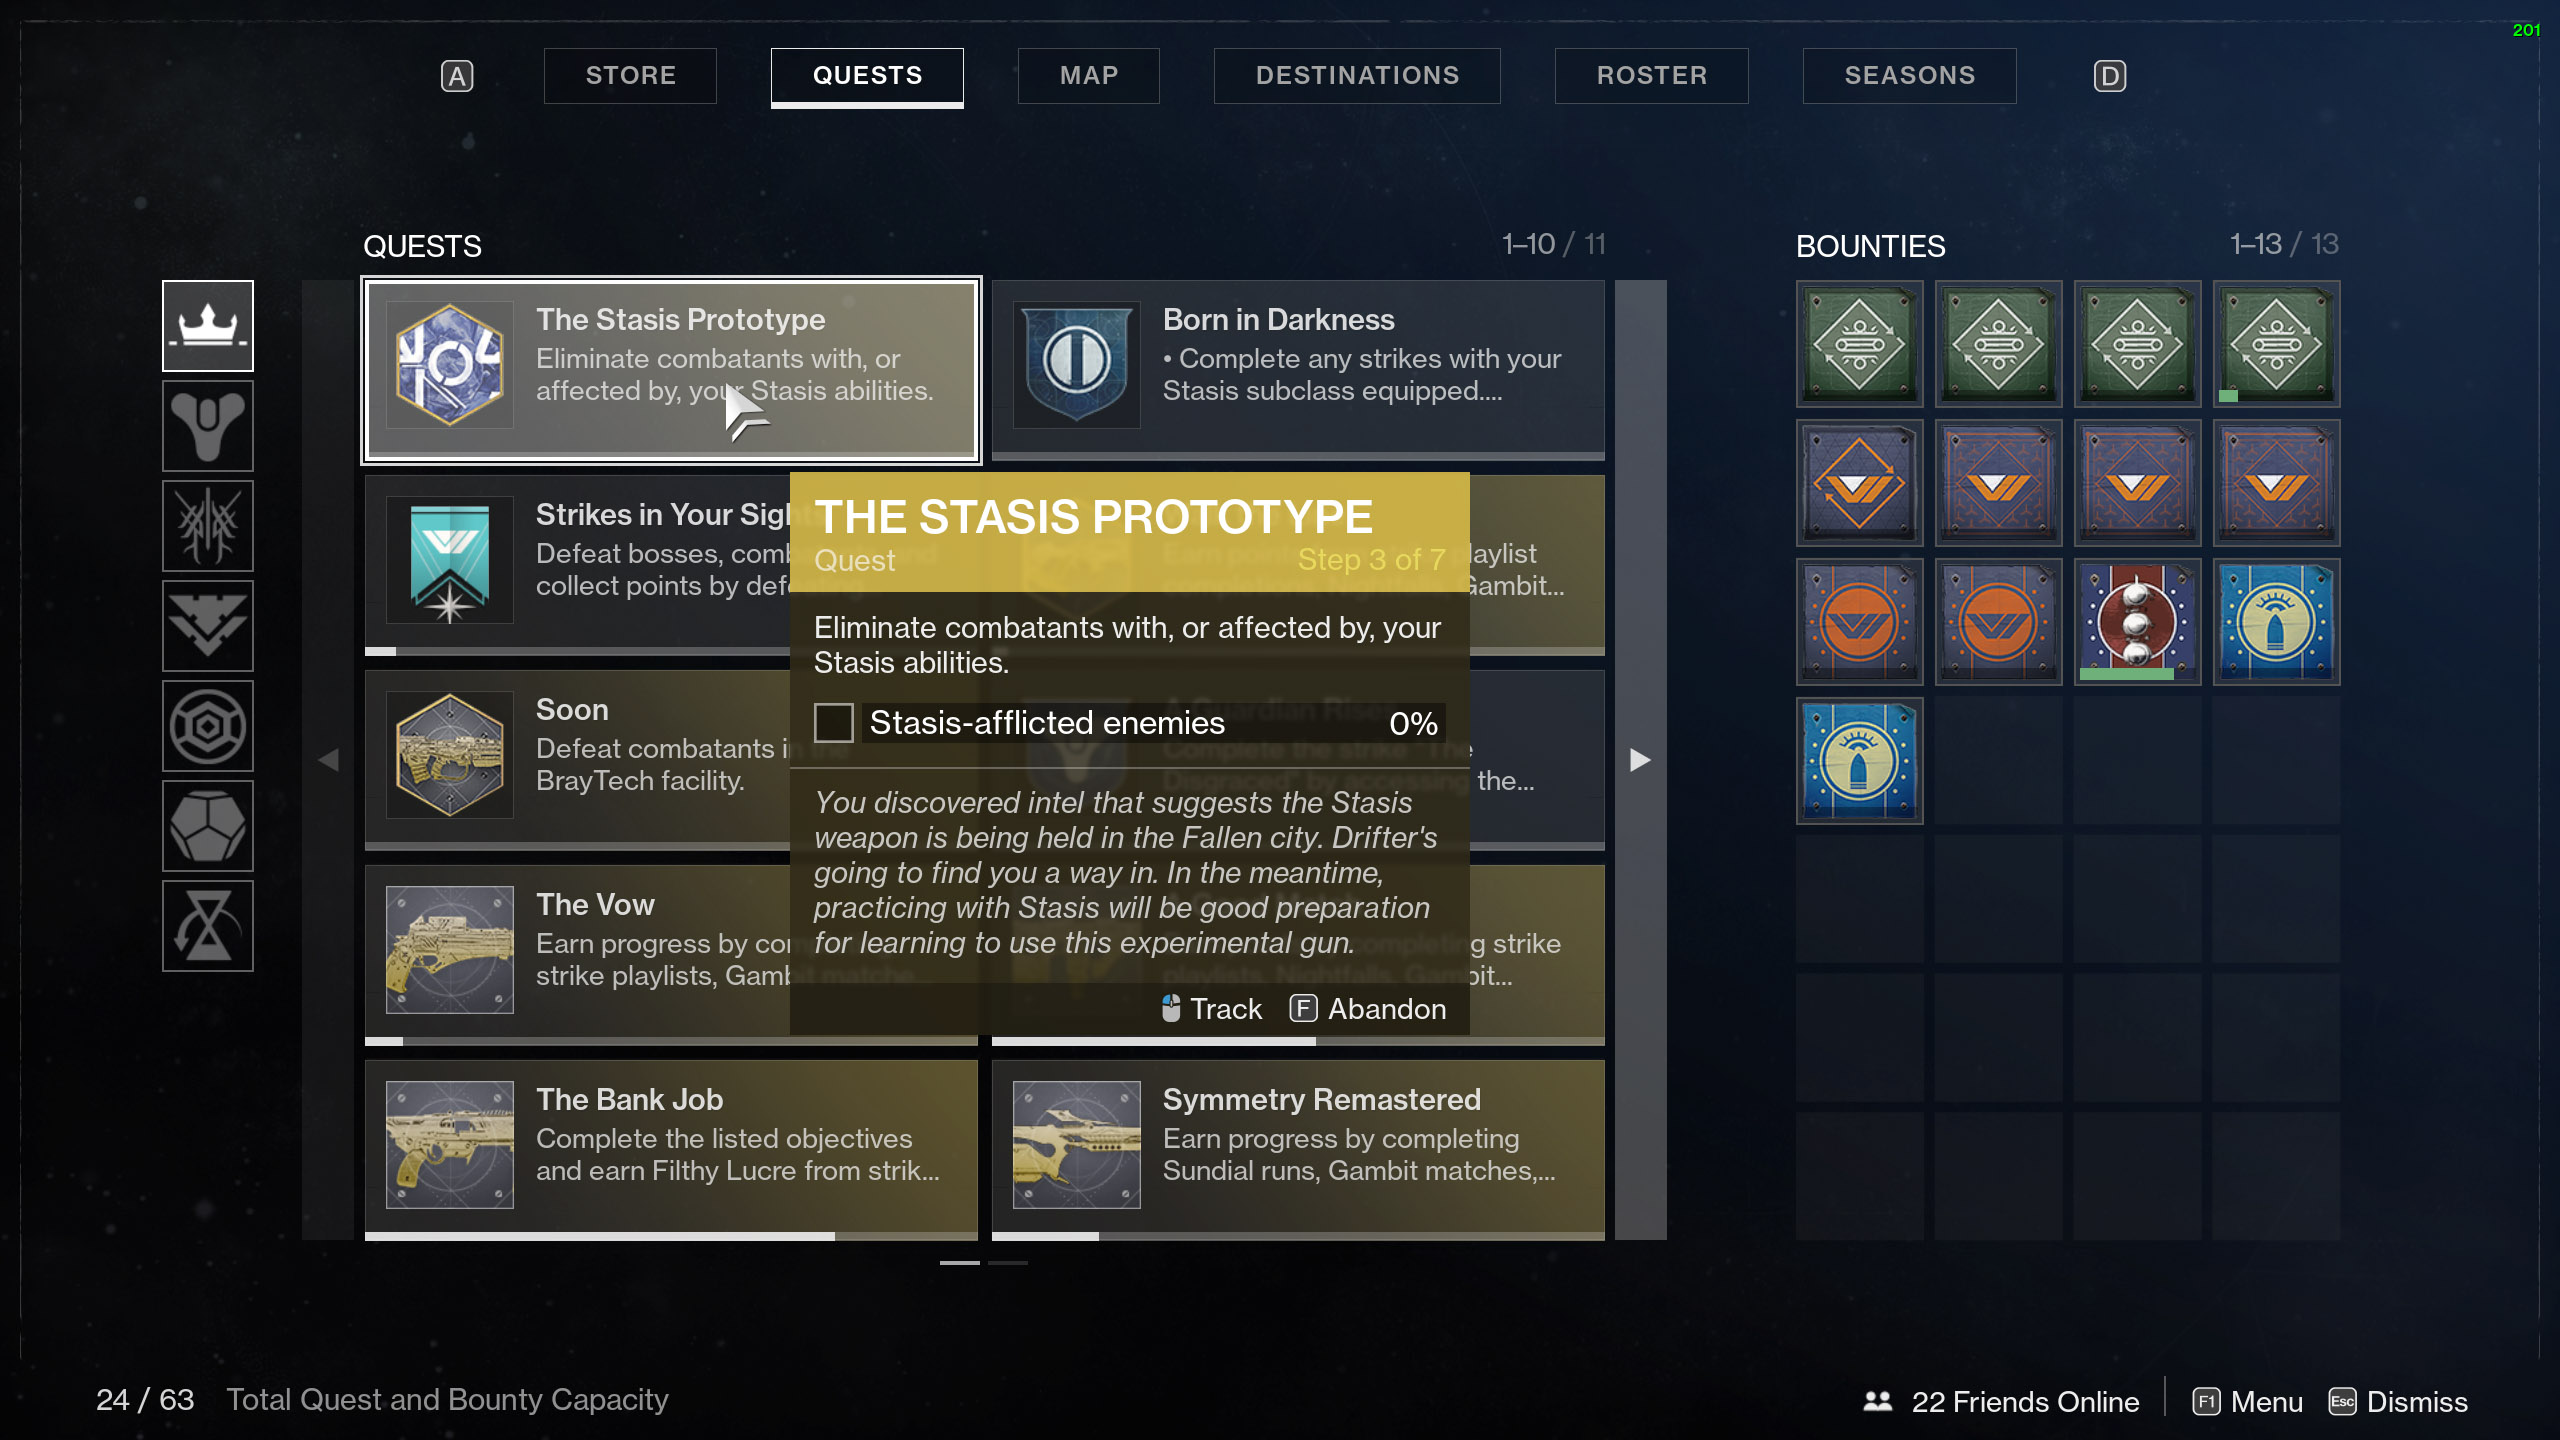 destiny 2 the stasis prototype stasis-afflicted enemies